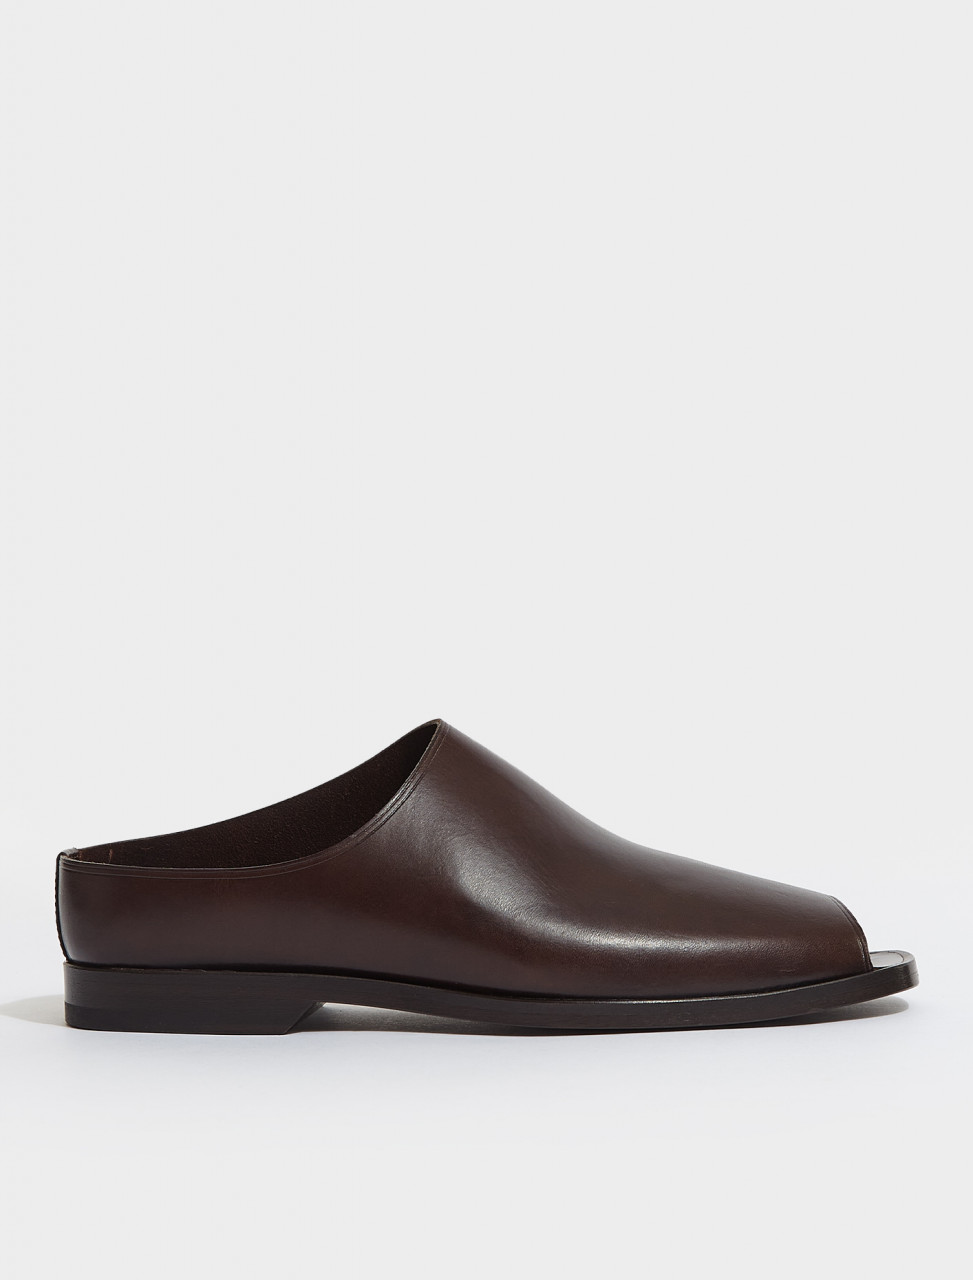 M-211-FO297-LL168-481 LEMAIRE FLAT MULES IN MIDNIGHT BROWN